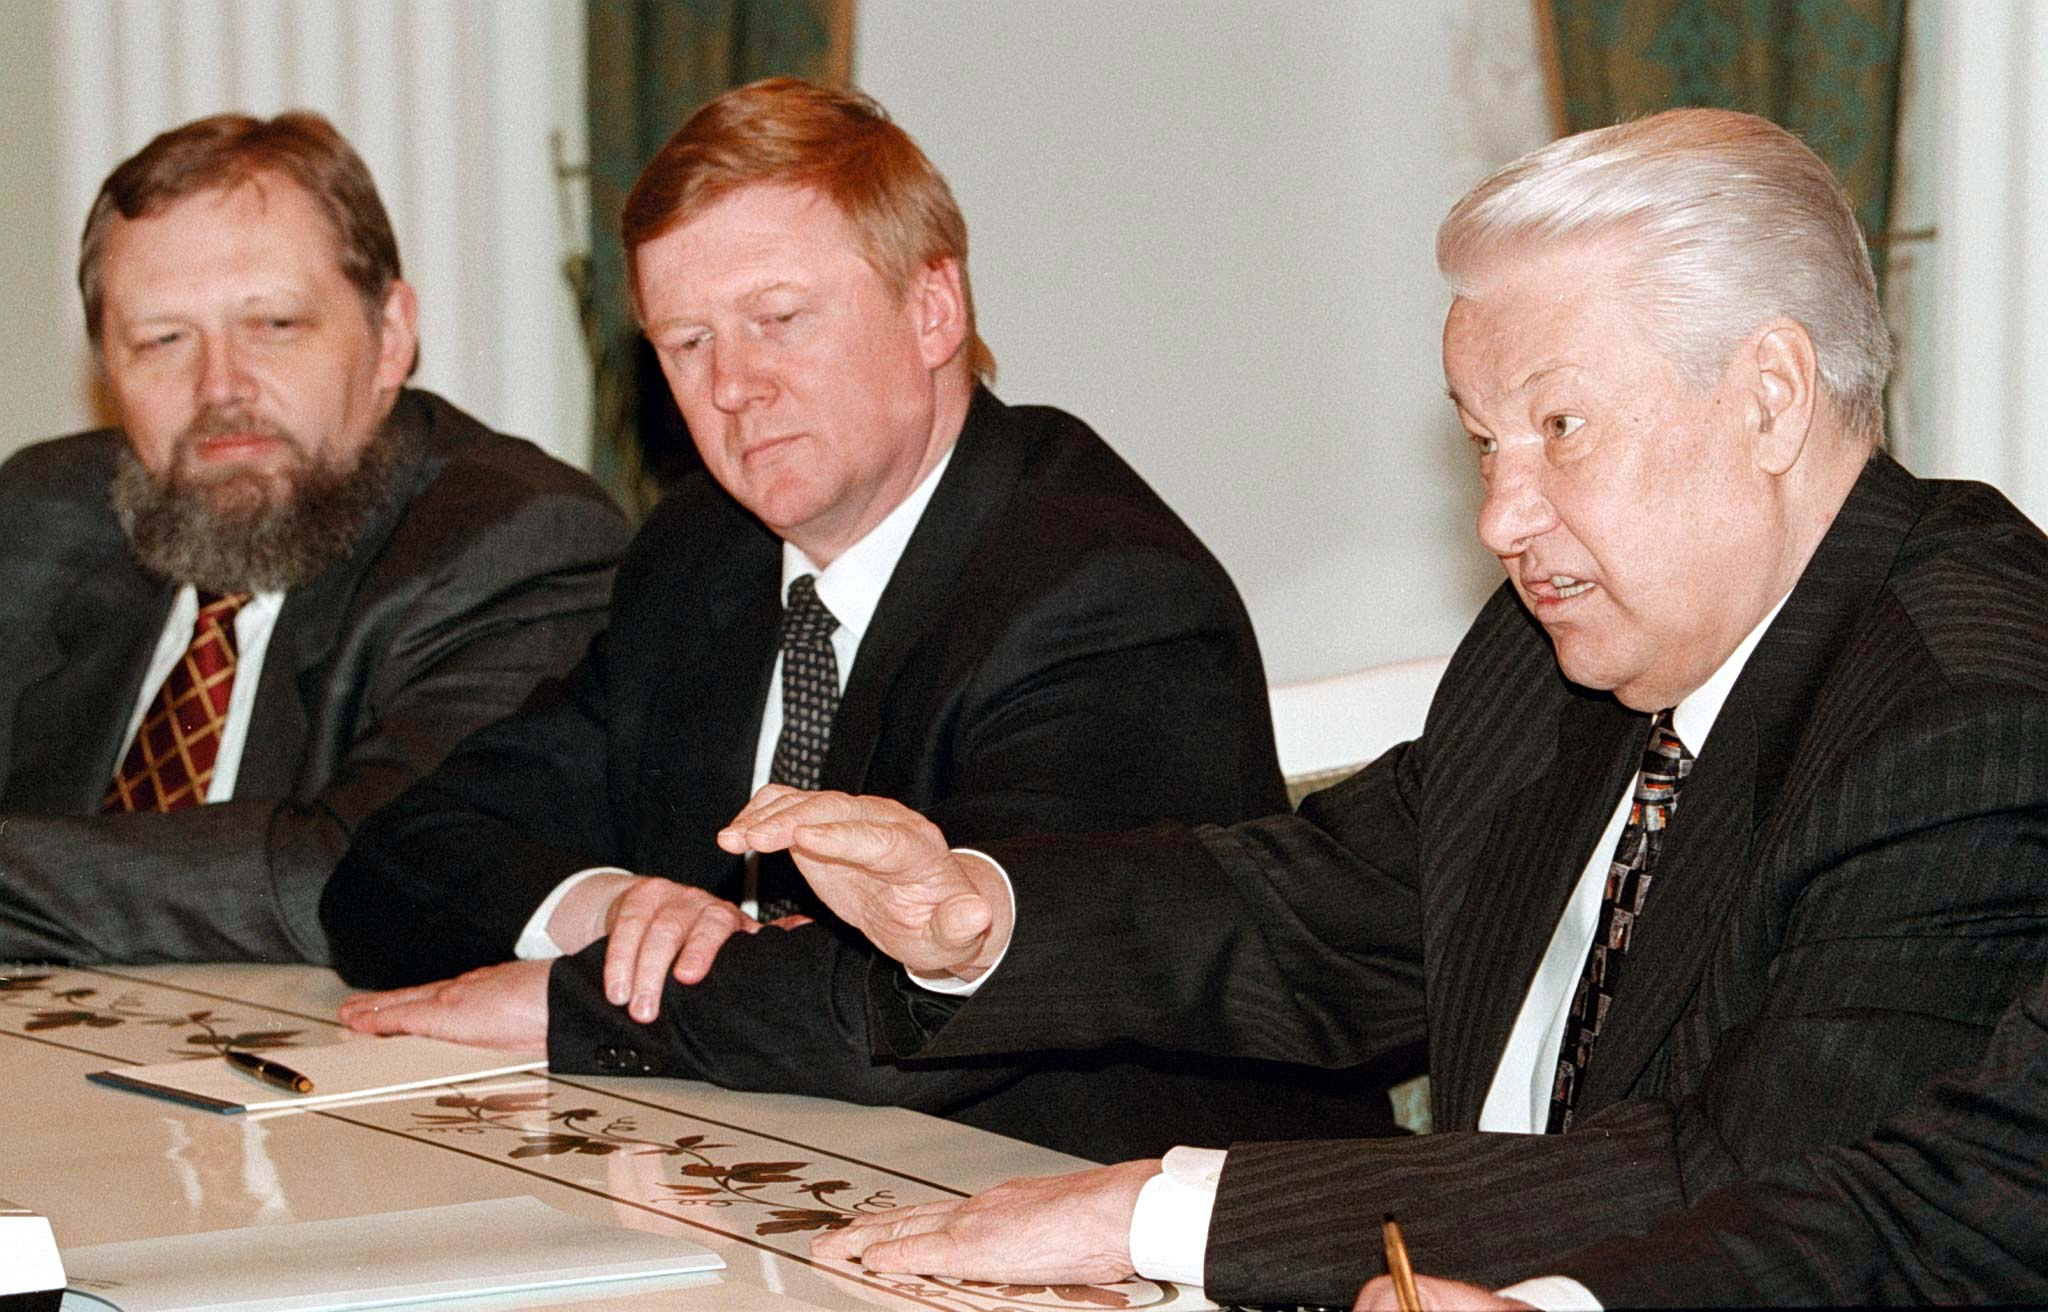 Russia after Putin will need to undergo similar reforms like the ones spearheaded by Anatoly Chubais.